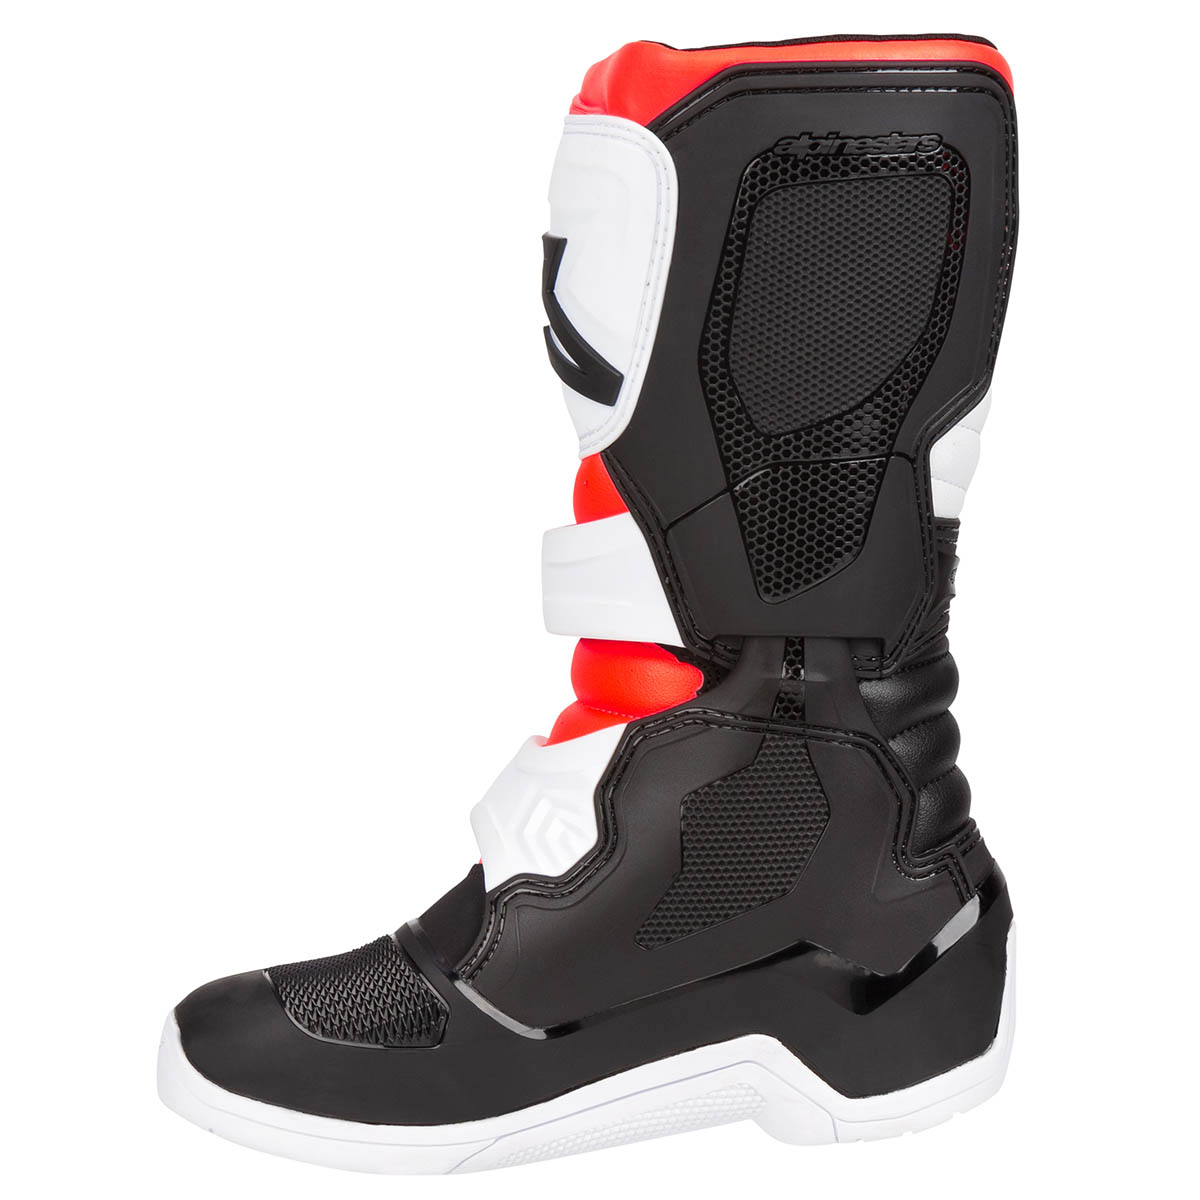 84ee0b78c11d39 2018 alpinestars tech 3S youth motocross quad boots black white red fluo  bottes enfant kinder stiefel